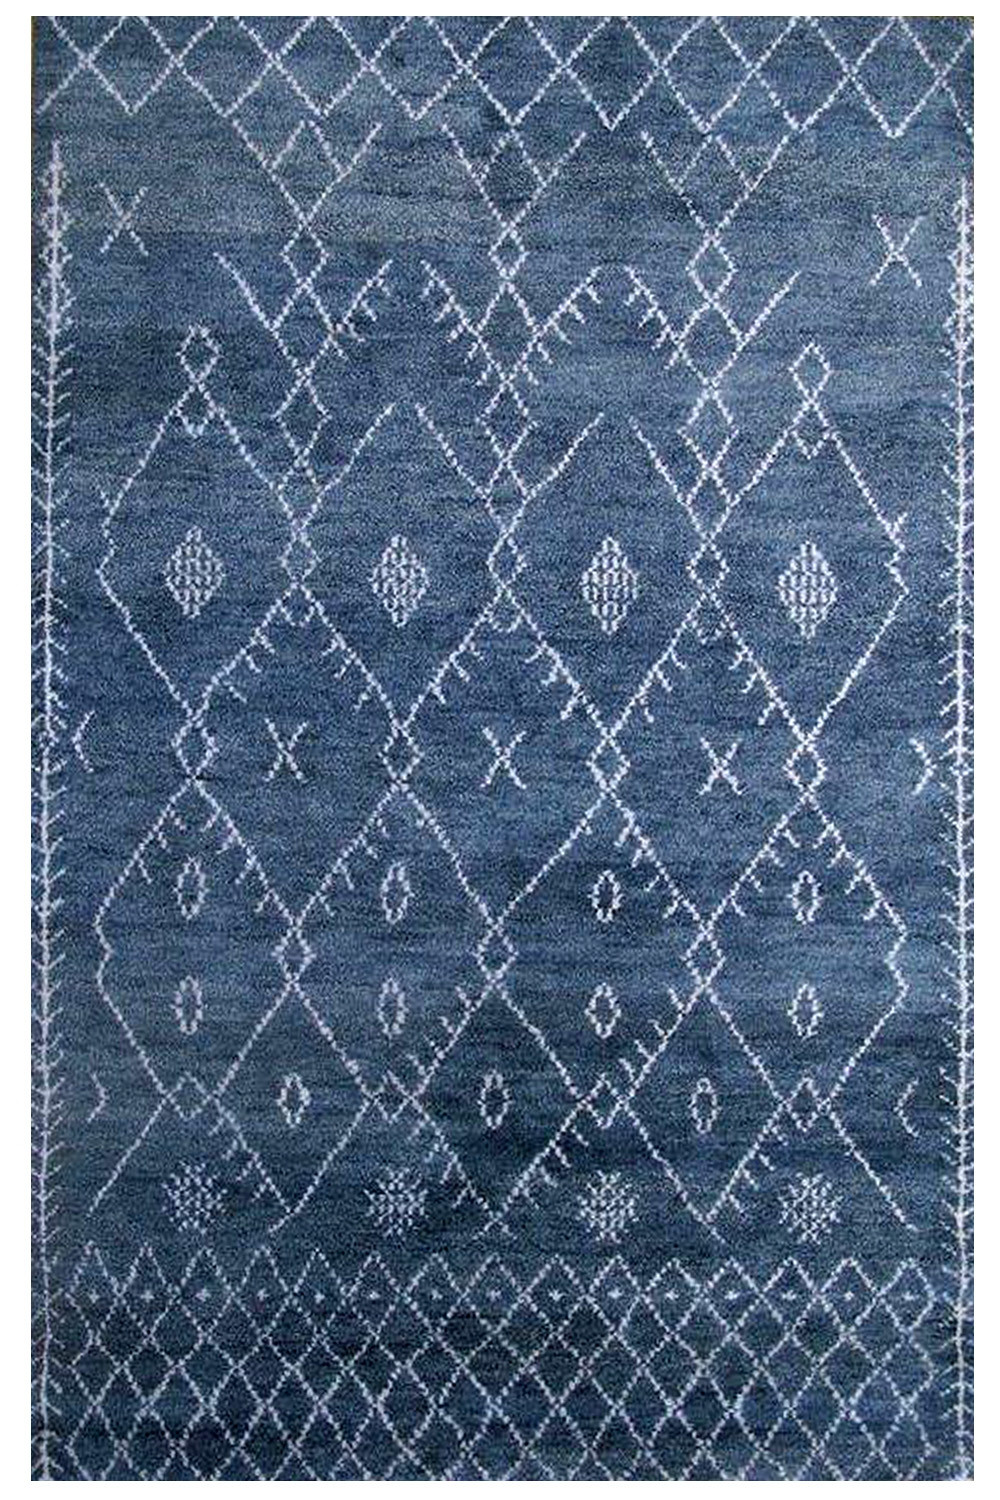 Purchase Beautiful Blue Denim Handknotted Moroccan Area Rug